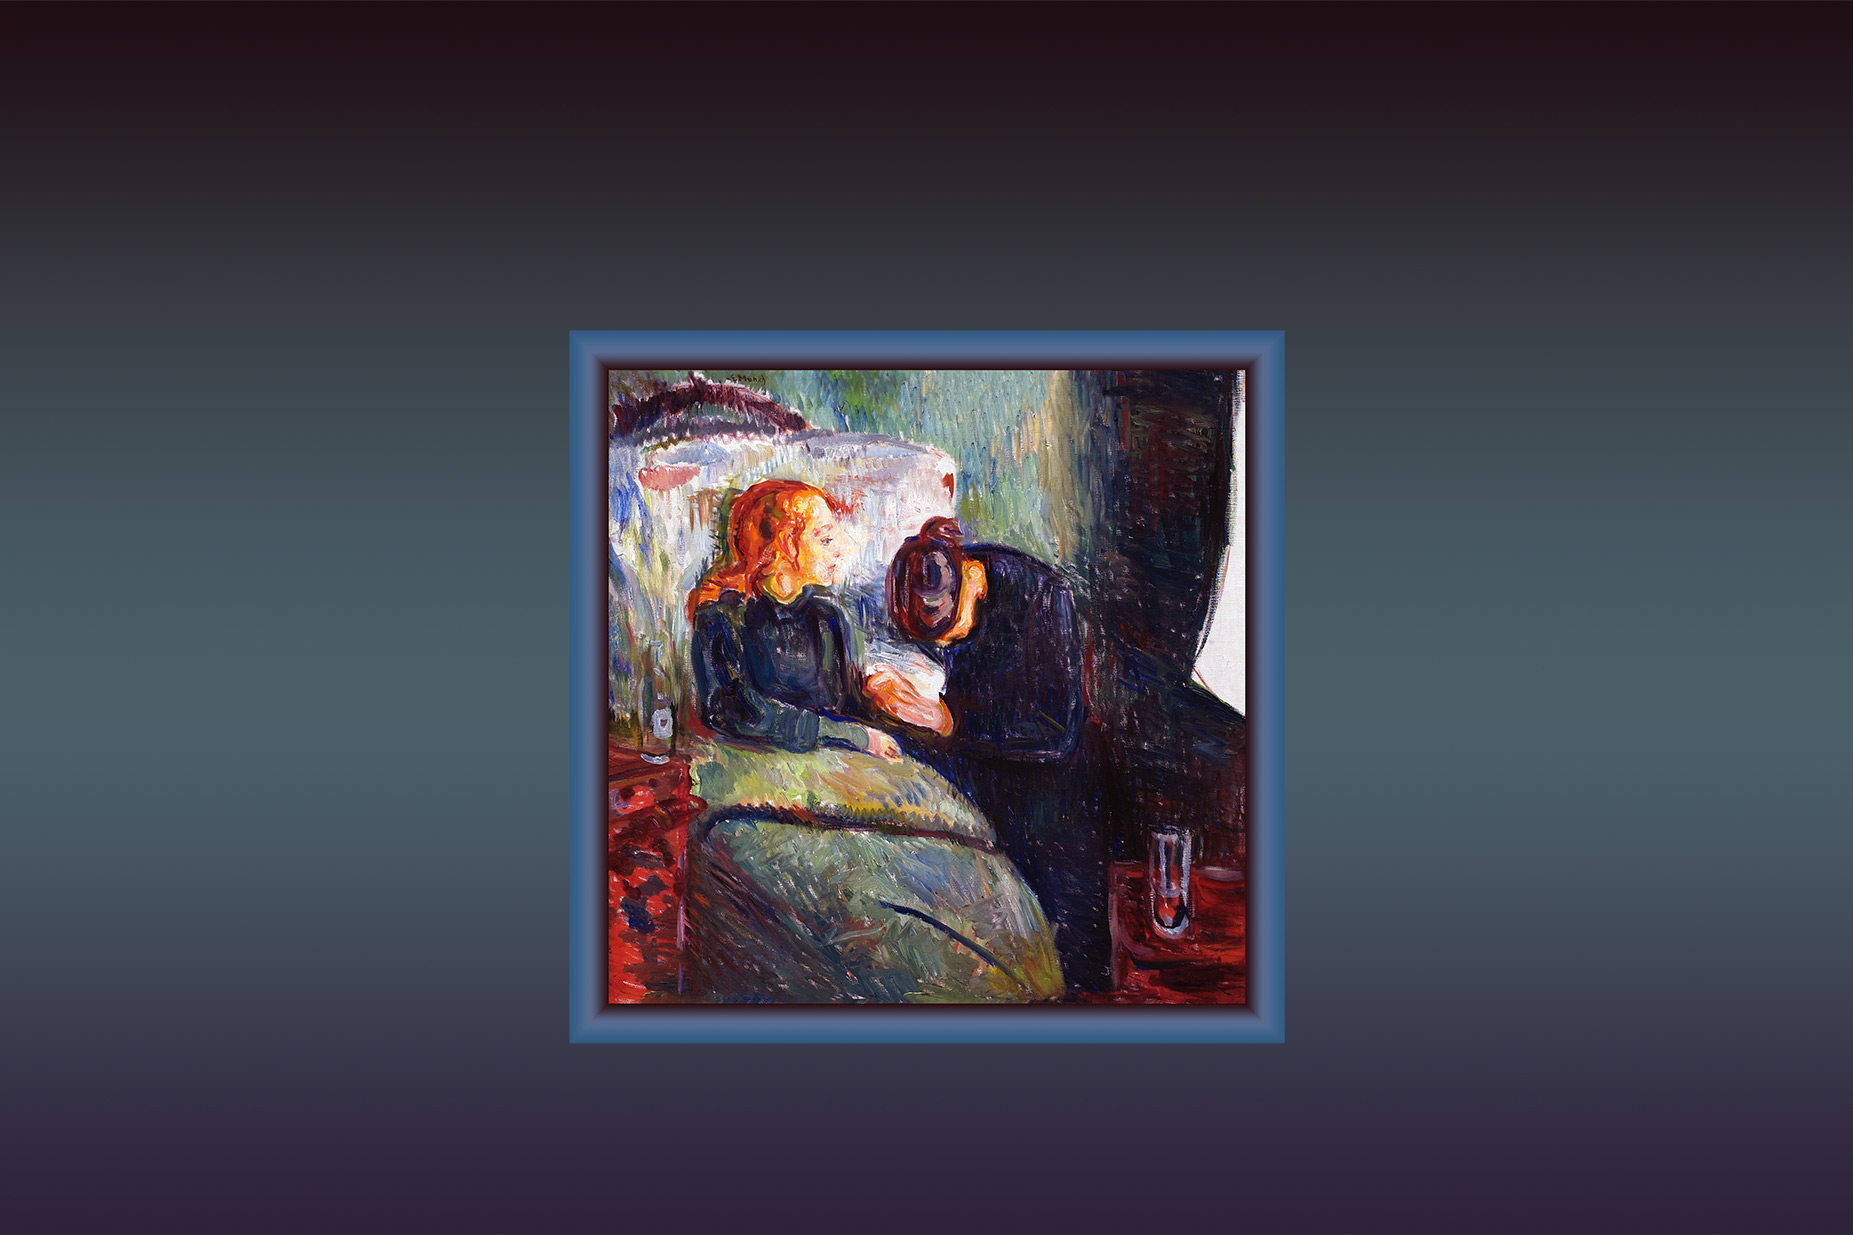 Pediatric Ethicscope cover 32(2) The Sick Child, Munch